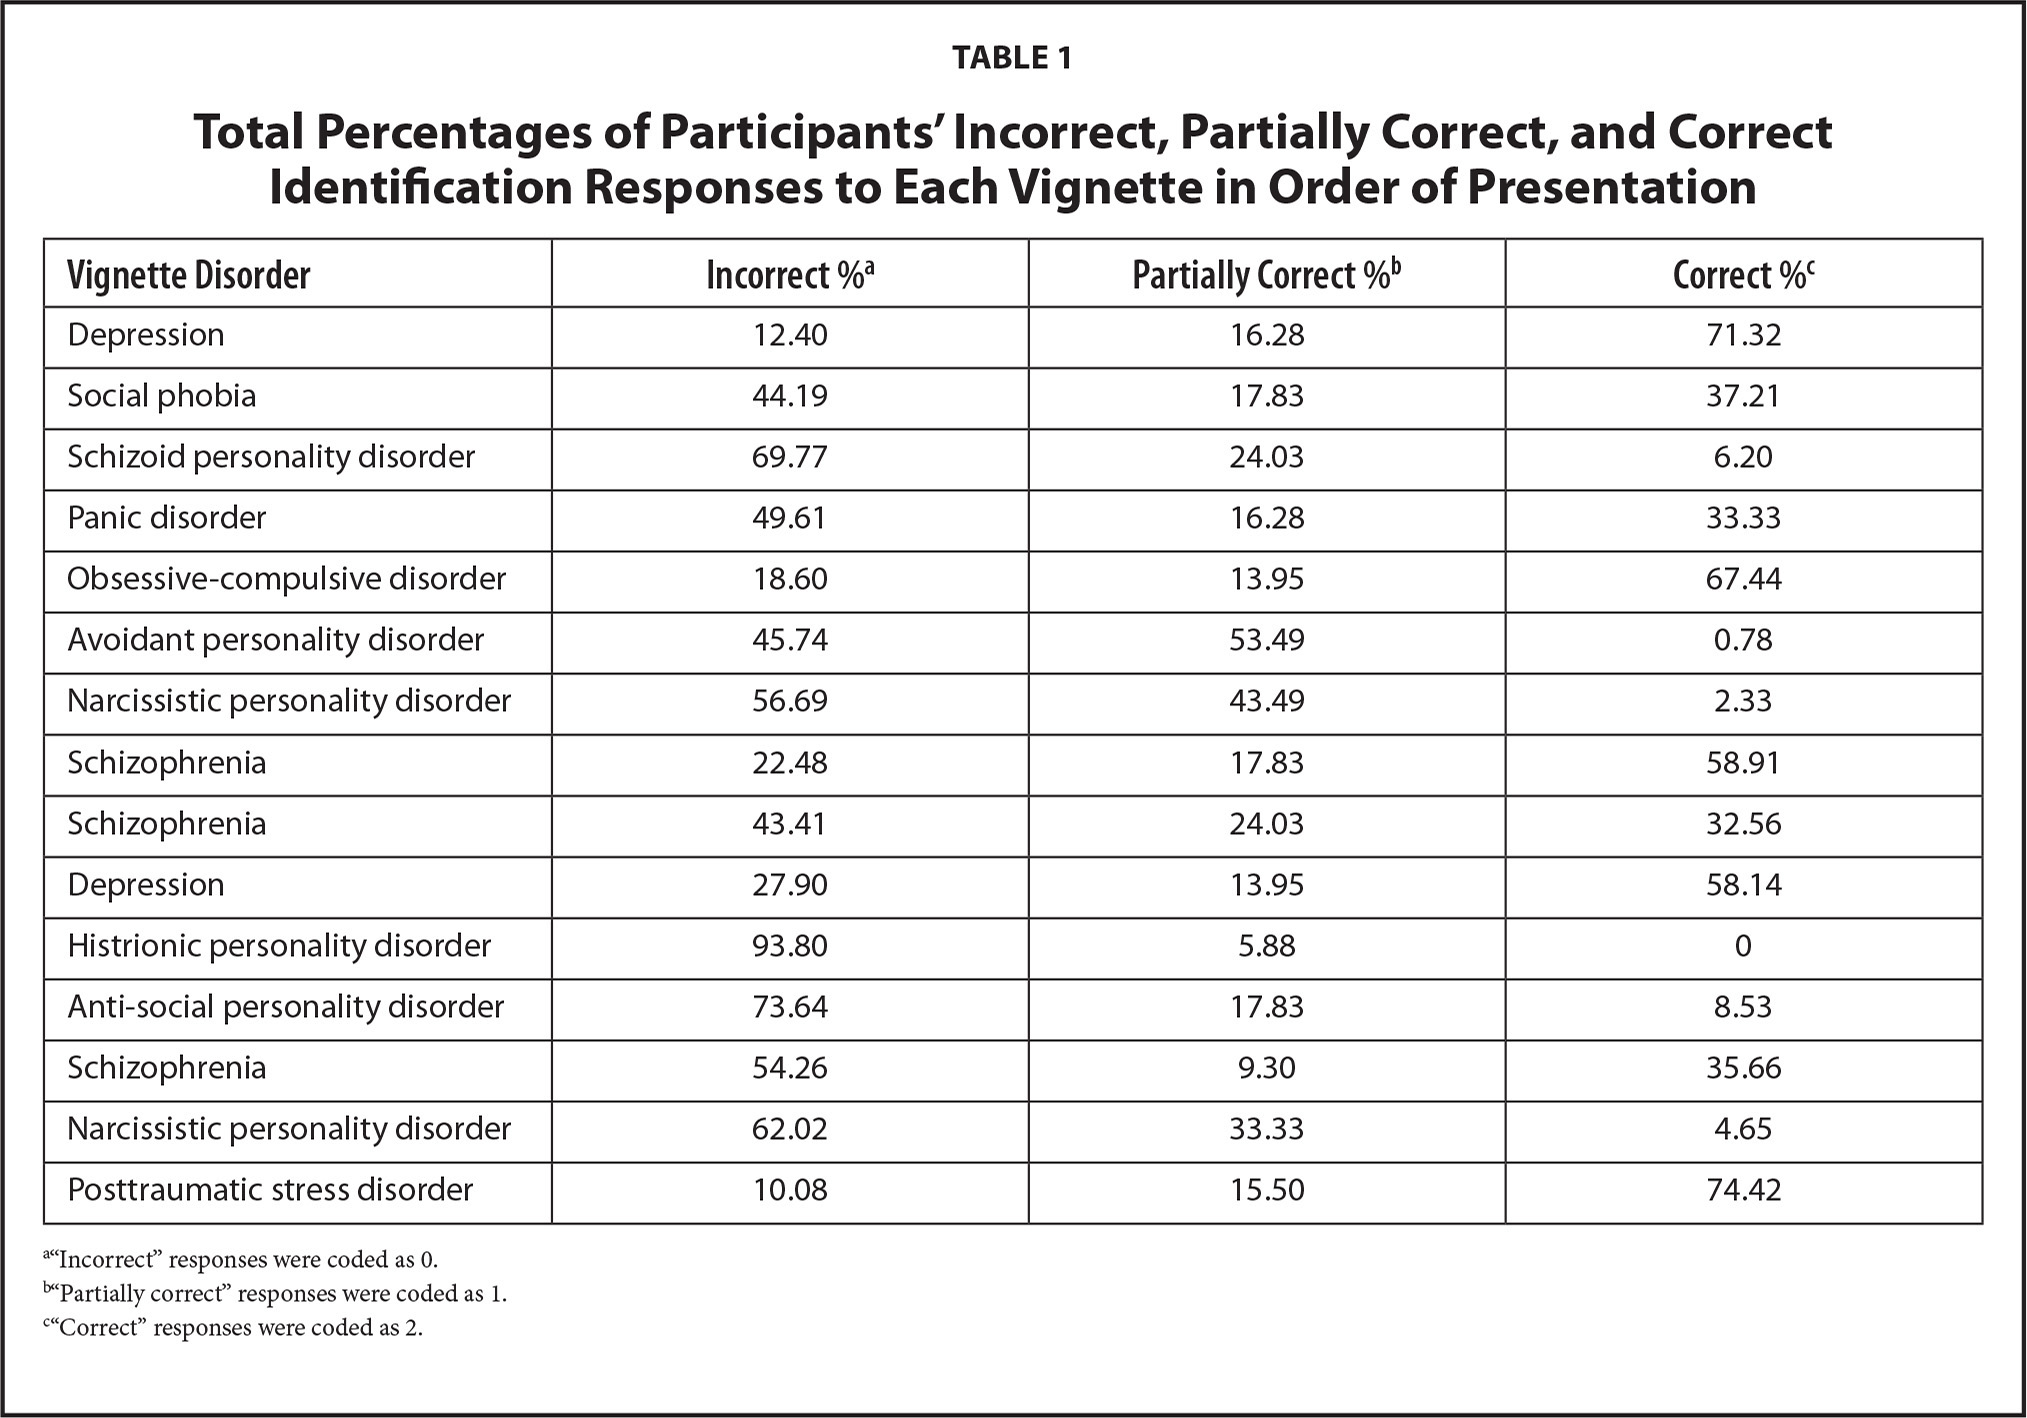 Total Percentages of Participants' Incorrect, Partially Correct, and Correct Identification Responses to Each Vignette in Order of Presentation